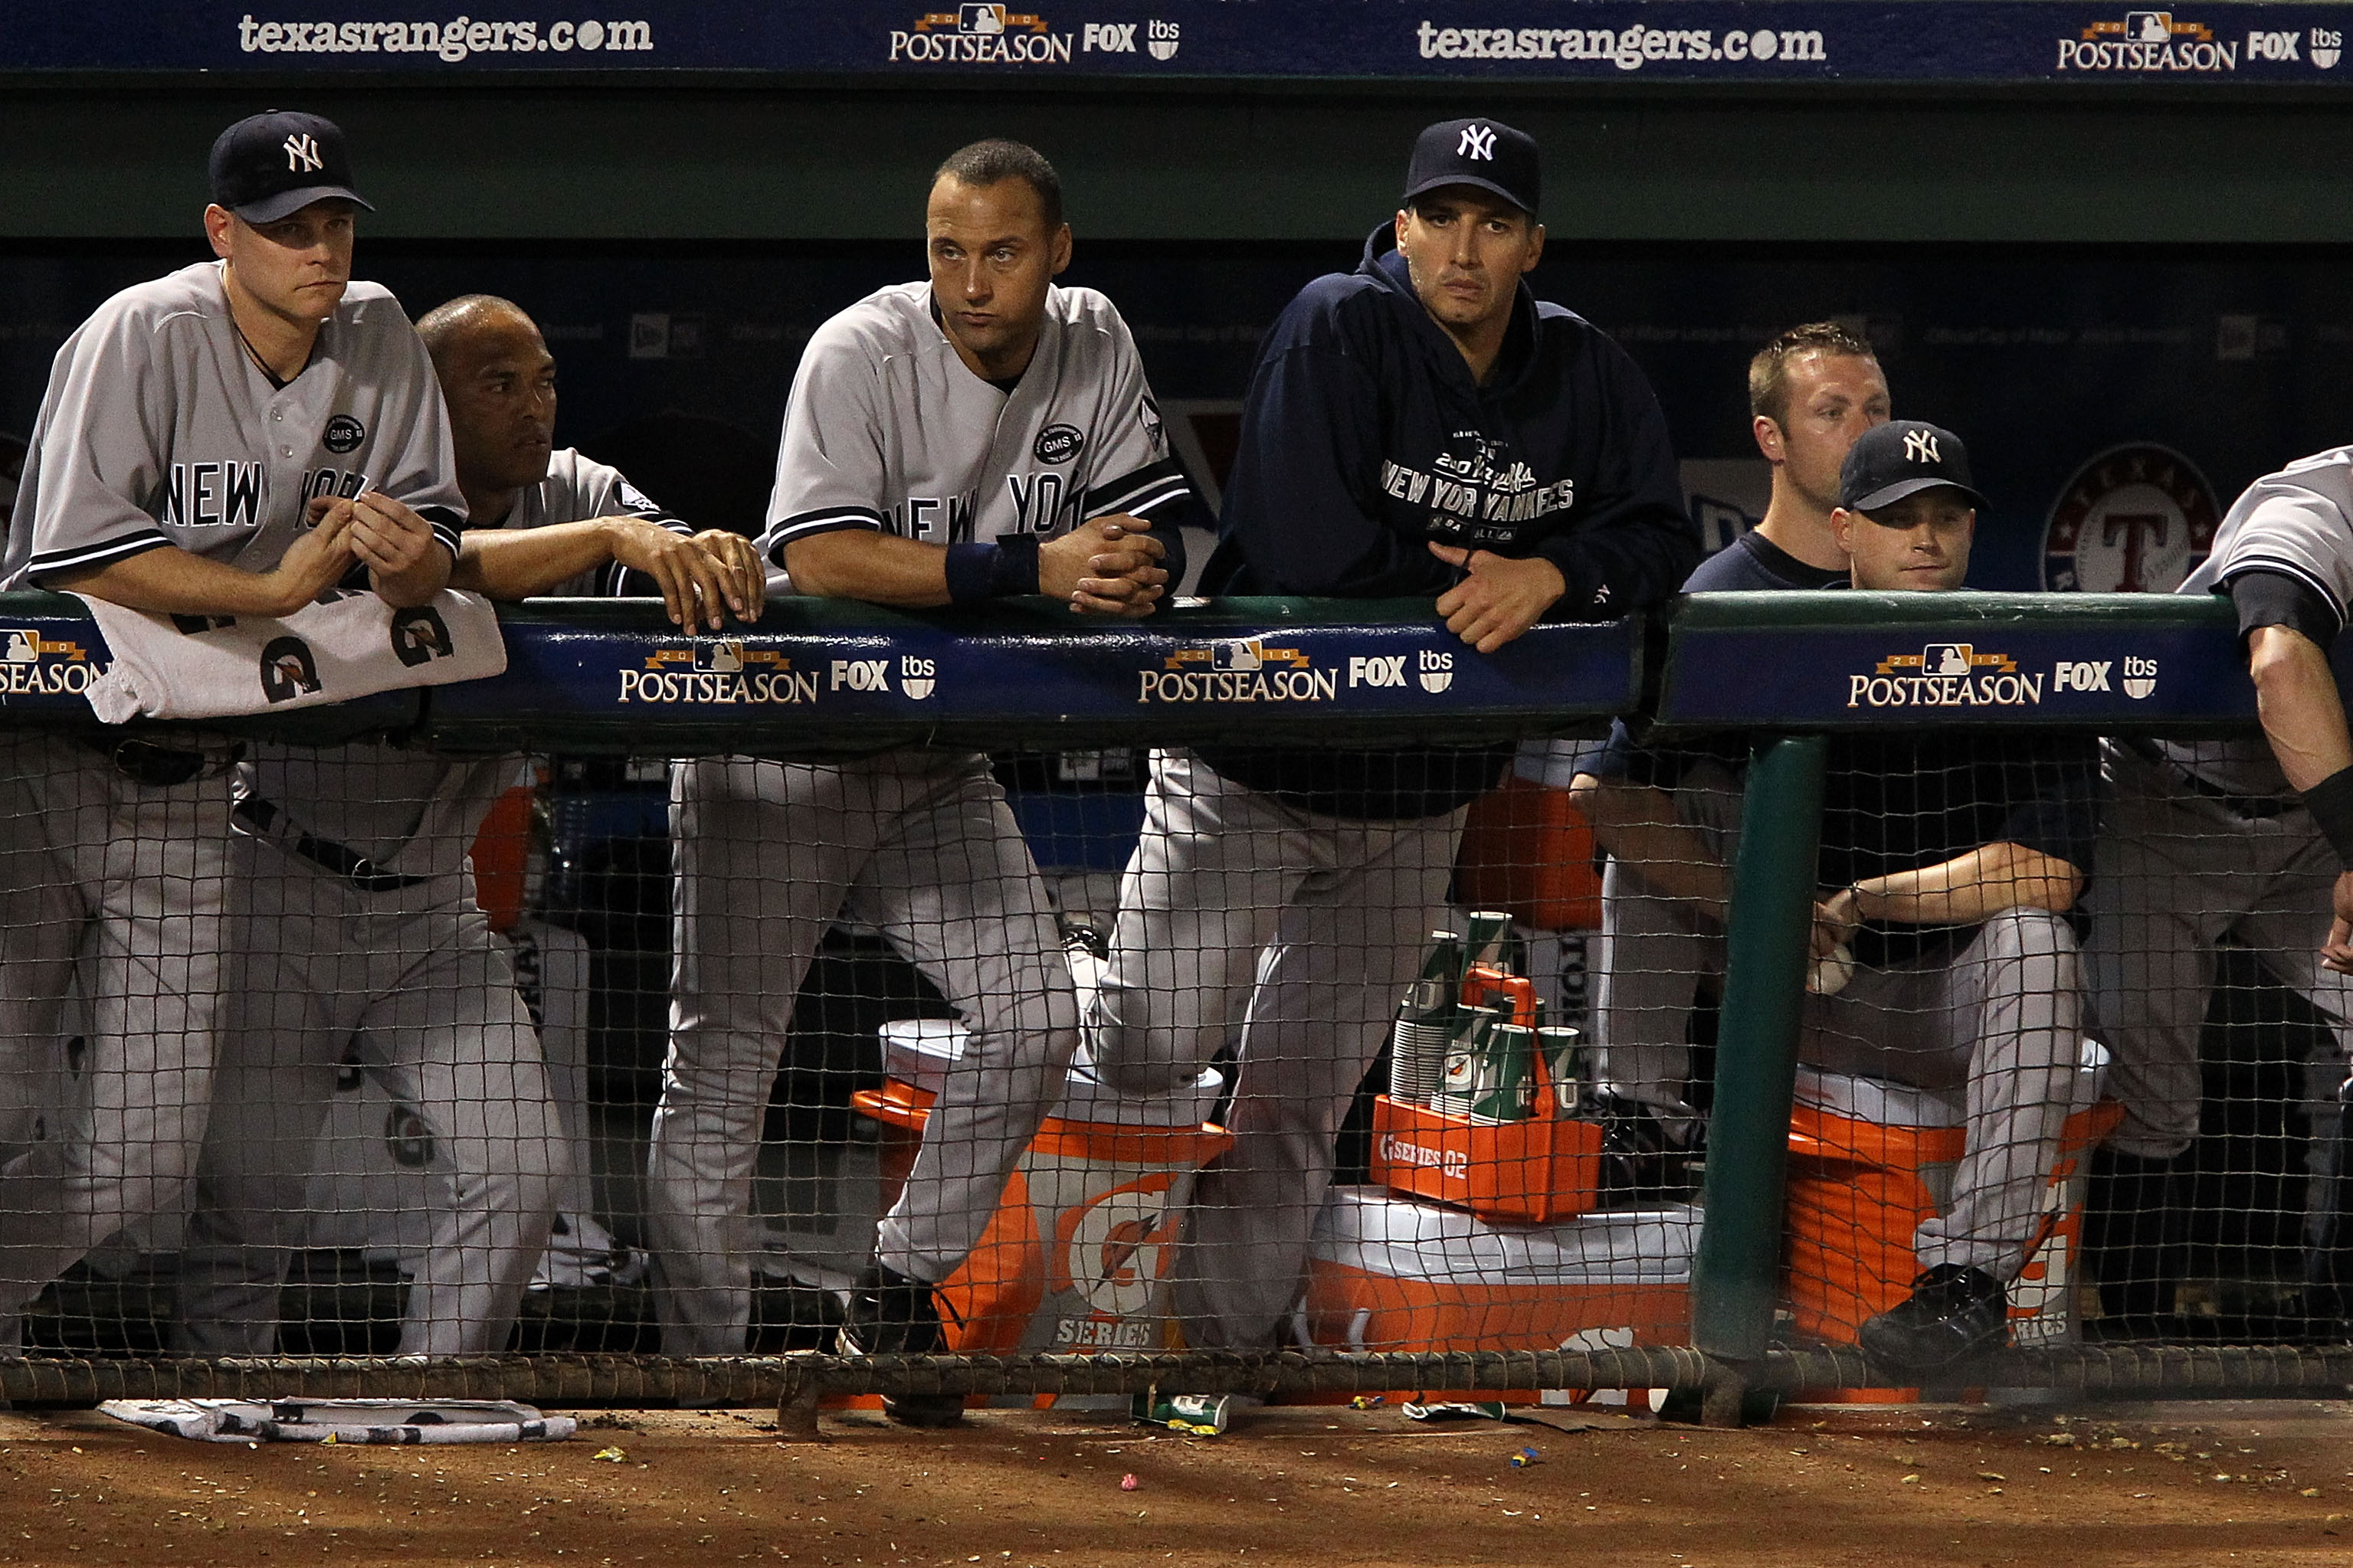 ARLINGTON, TX - OCTOBER 22:  (L-R) Kerry Wood #39, Mariano Rivera #42, Derek Jeter #2, and Andy Pettitte #46 of the New York Yankees look on from the dugout during Game Six of the ALCS against the Texas Rangers during the 2010 MLB Playoffs at Rangers Ball